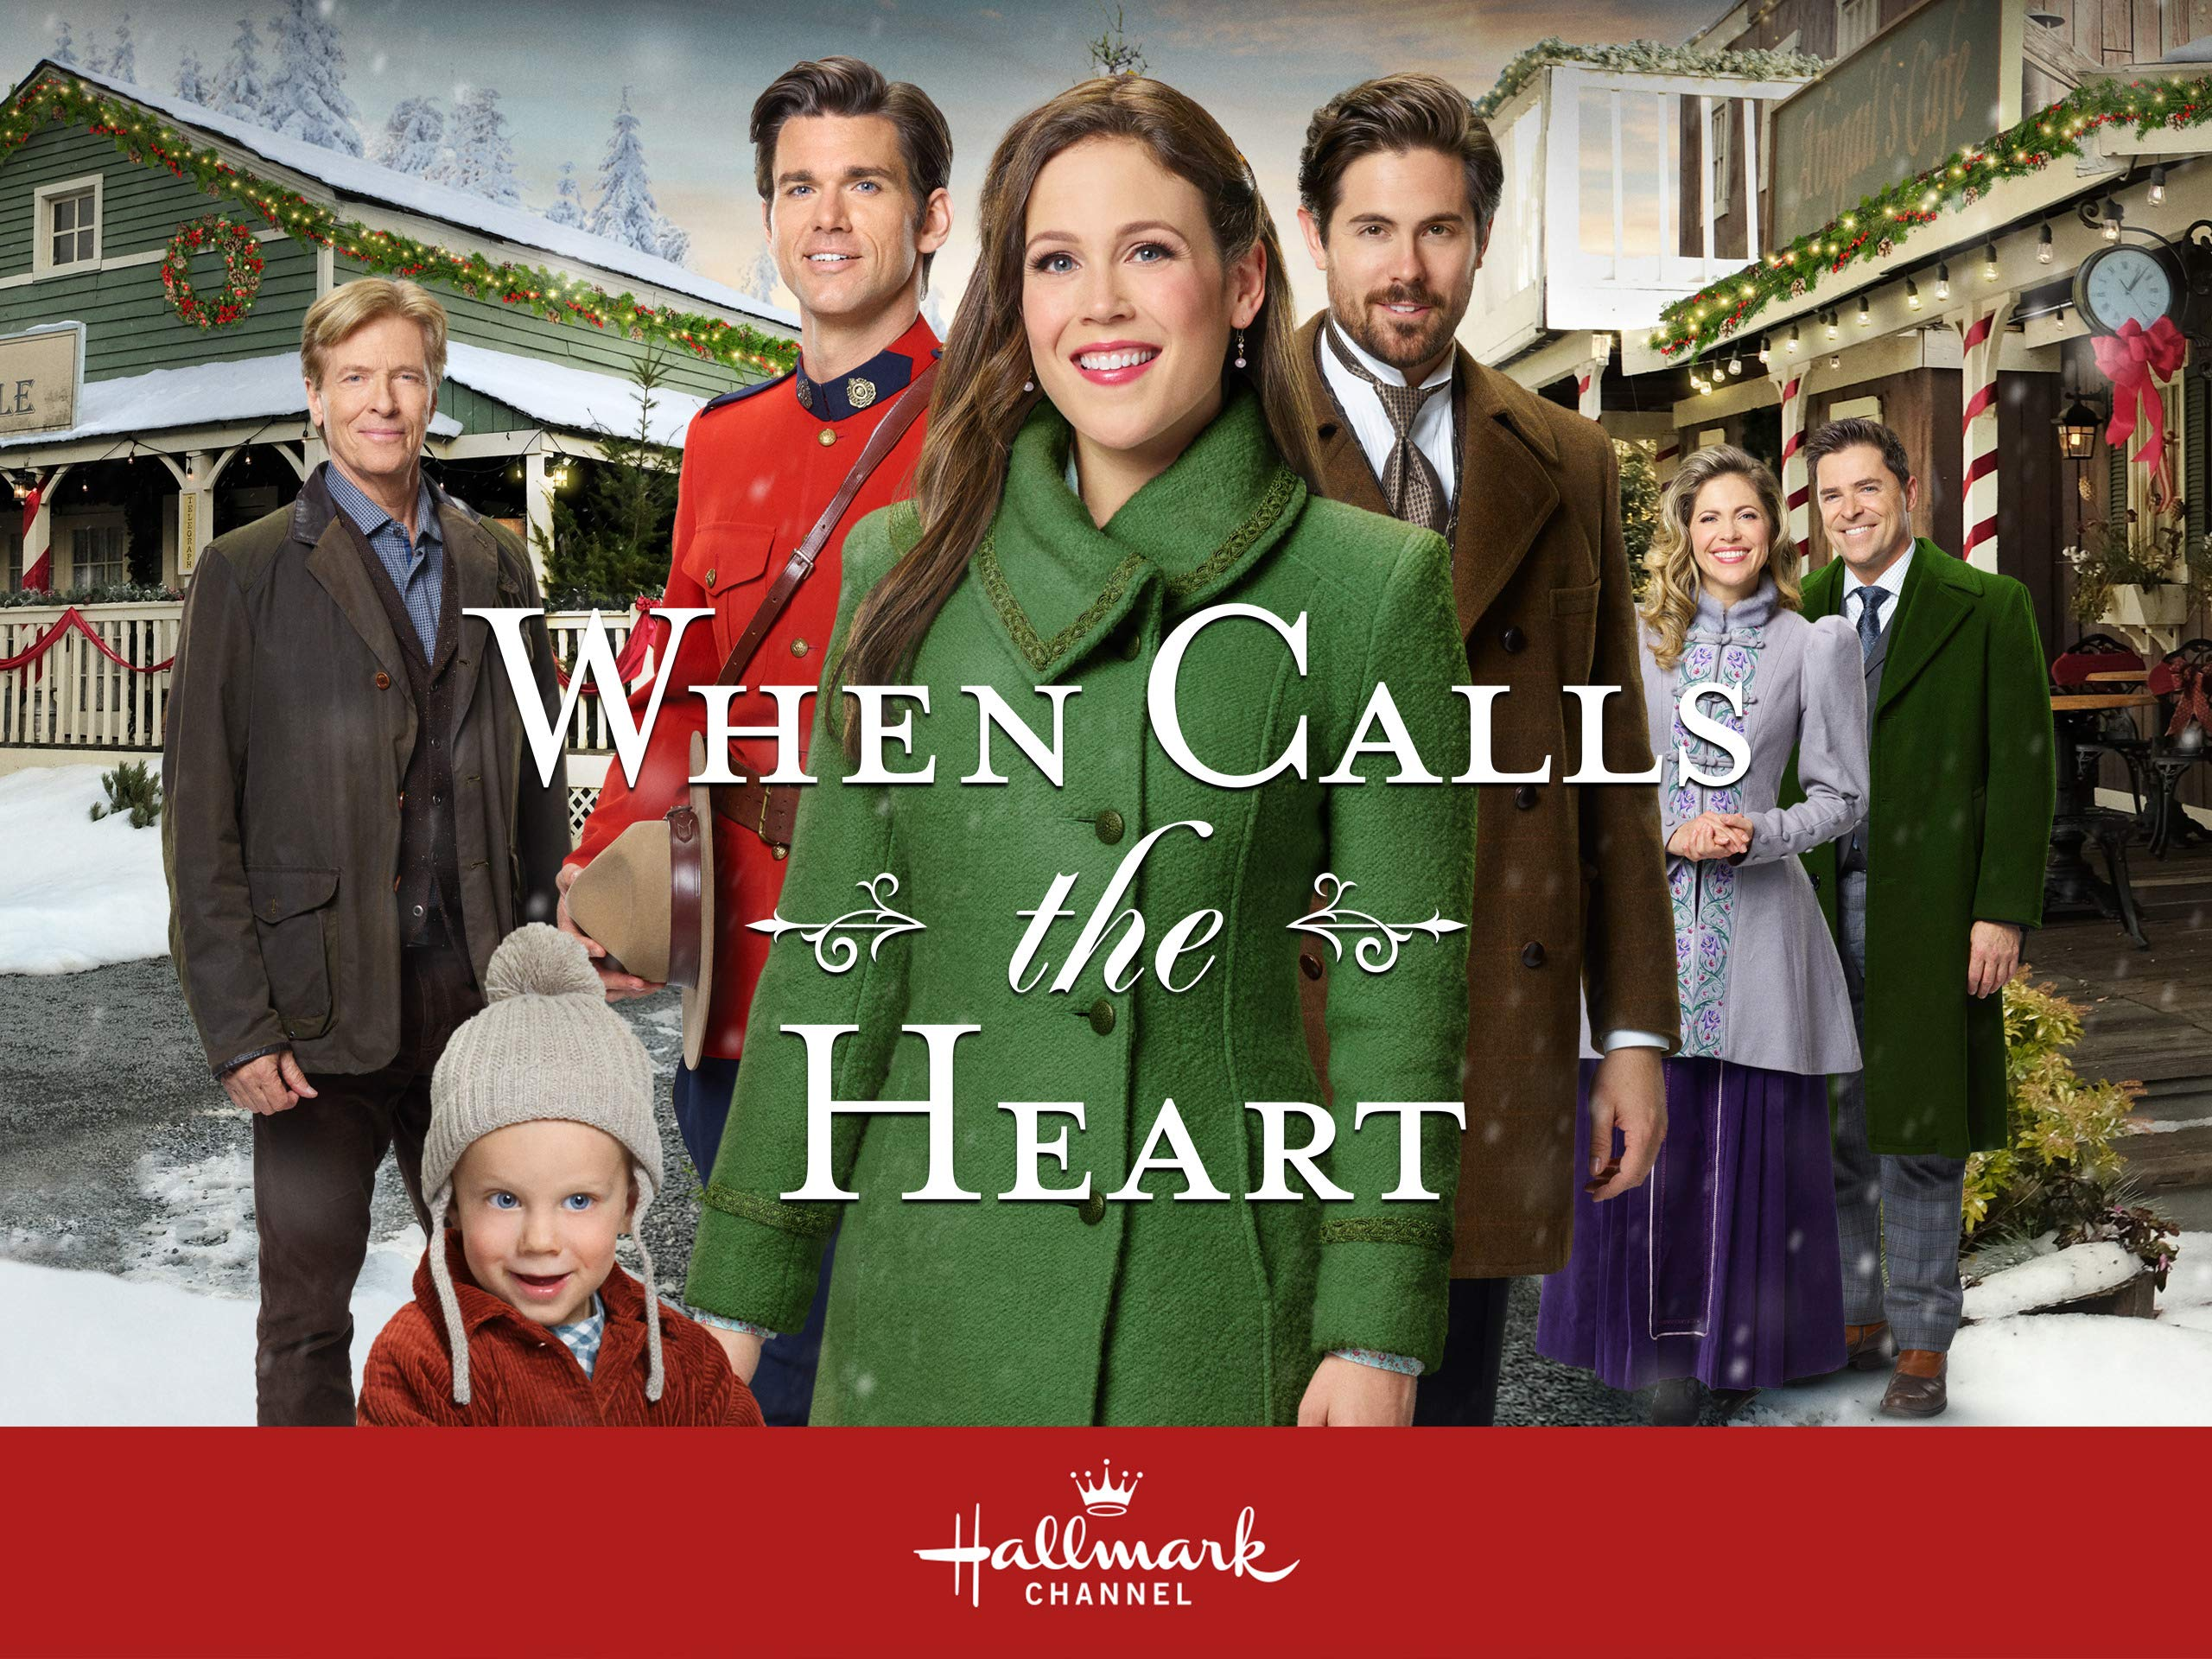 When Calls The Heart Christmas 2020 Youtube Watch When Calls the Heart, Season 7 | Prime Video